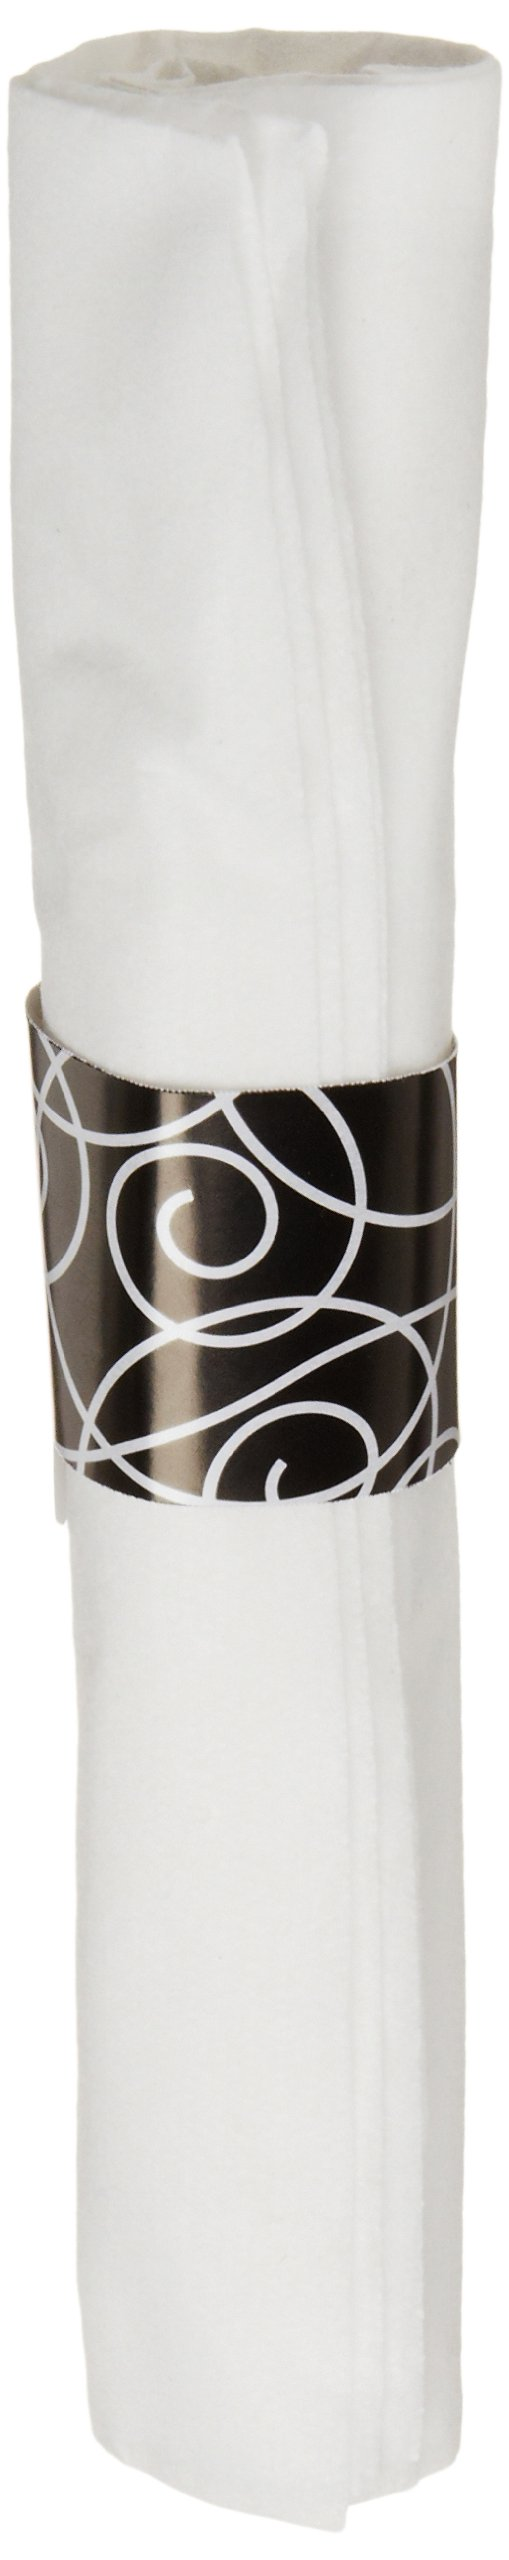 Hoffmaster 119971 Linen-Like CaterWrap Pre-Rolled Dinner Napkin and Heavyweight Cutlery, Silver Swirl, White/Black (Case of 100)